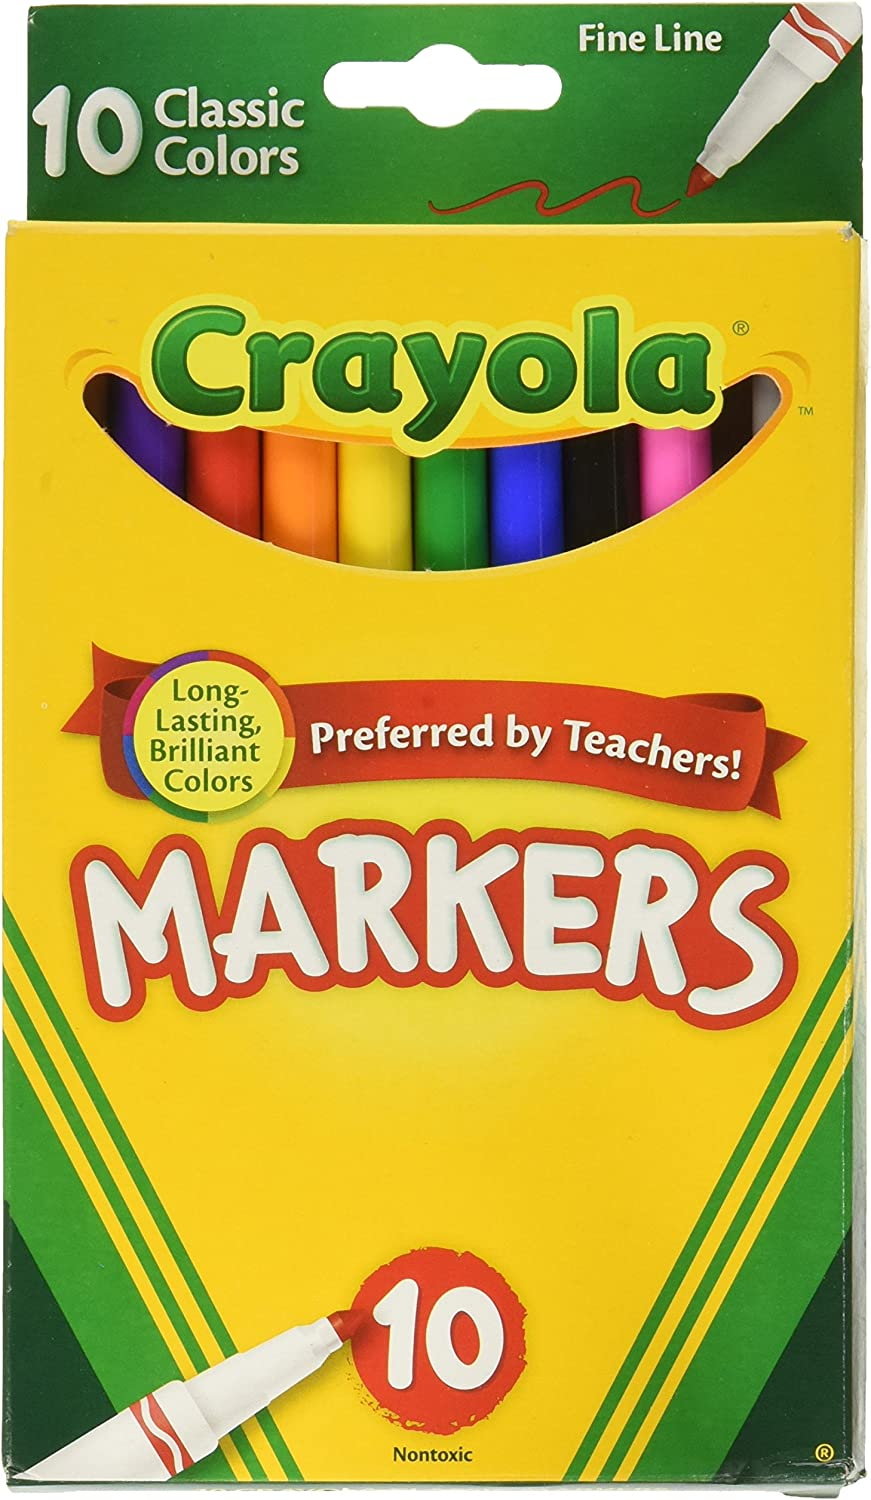 10 Ct Pack of 24 Classic Colors Crayola Fine Line Markers